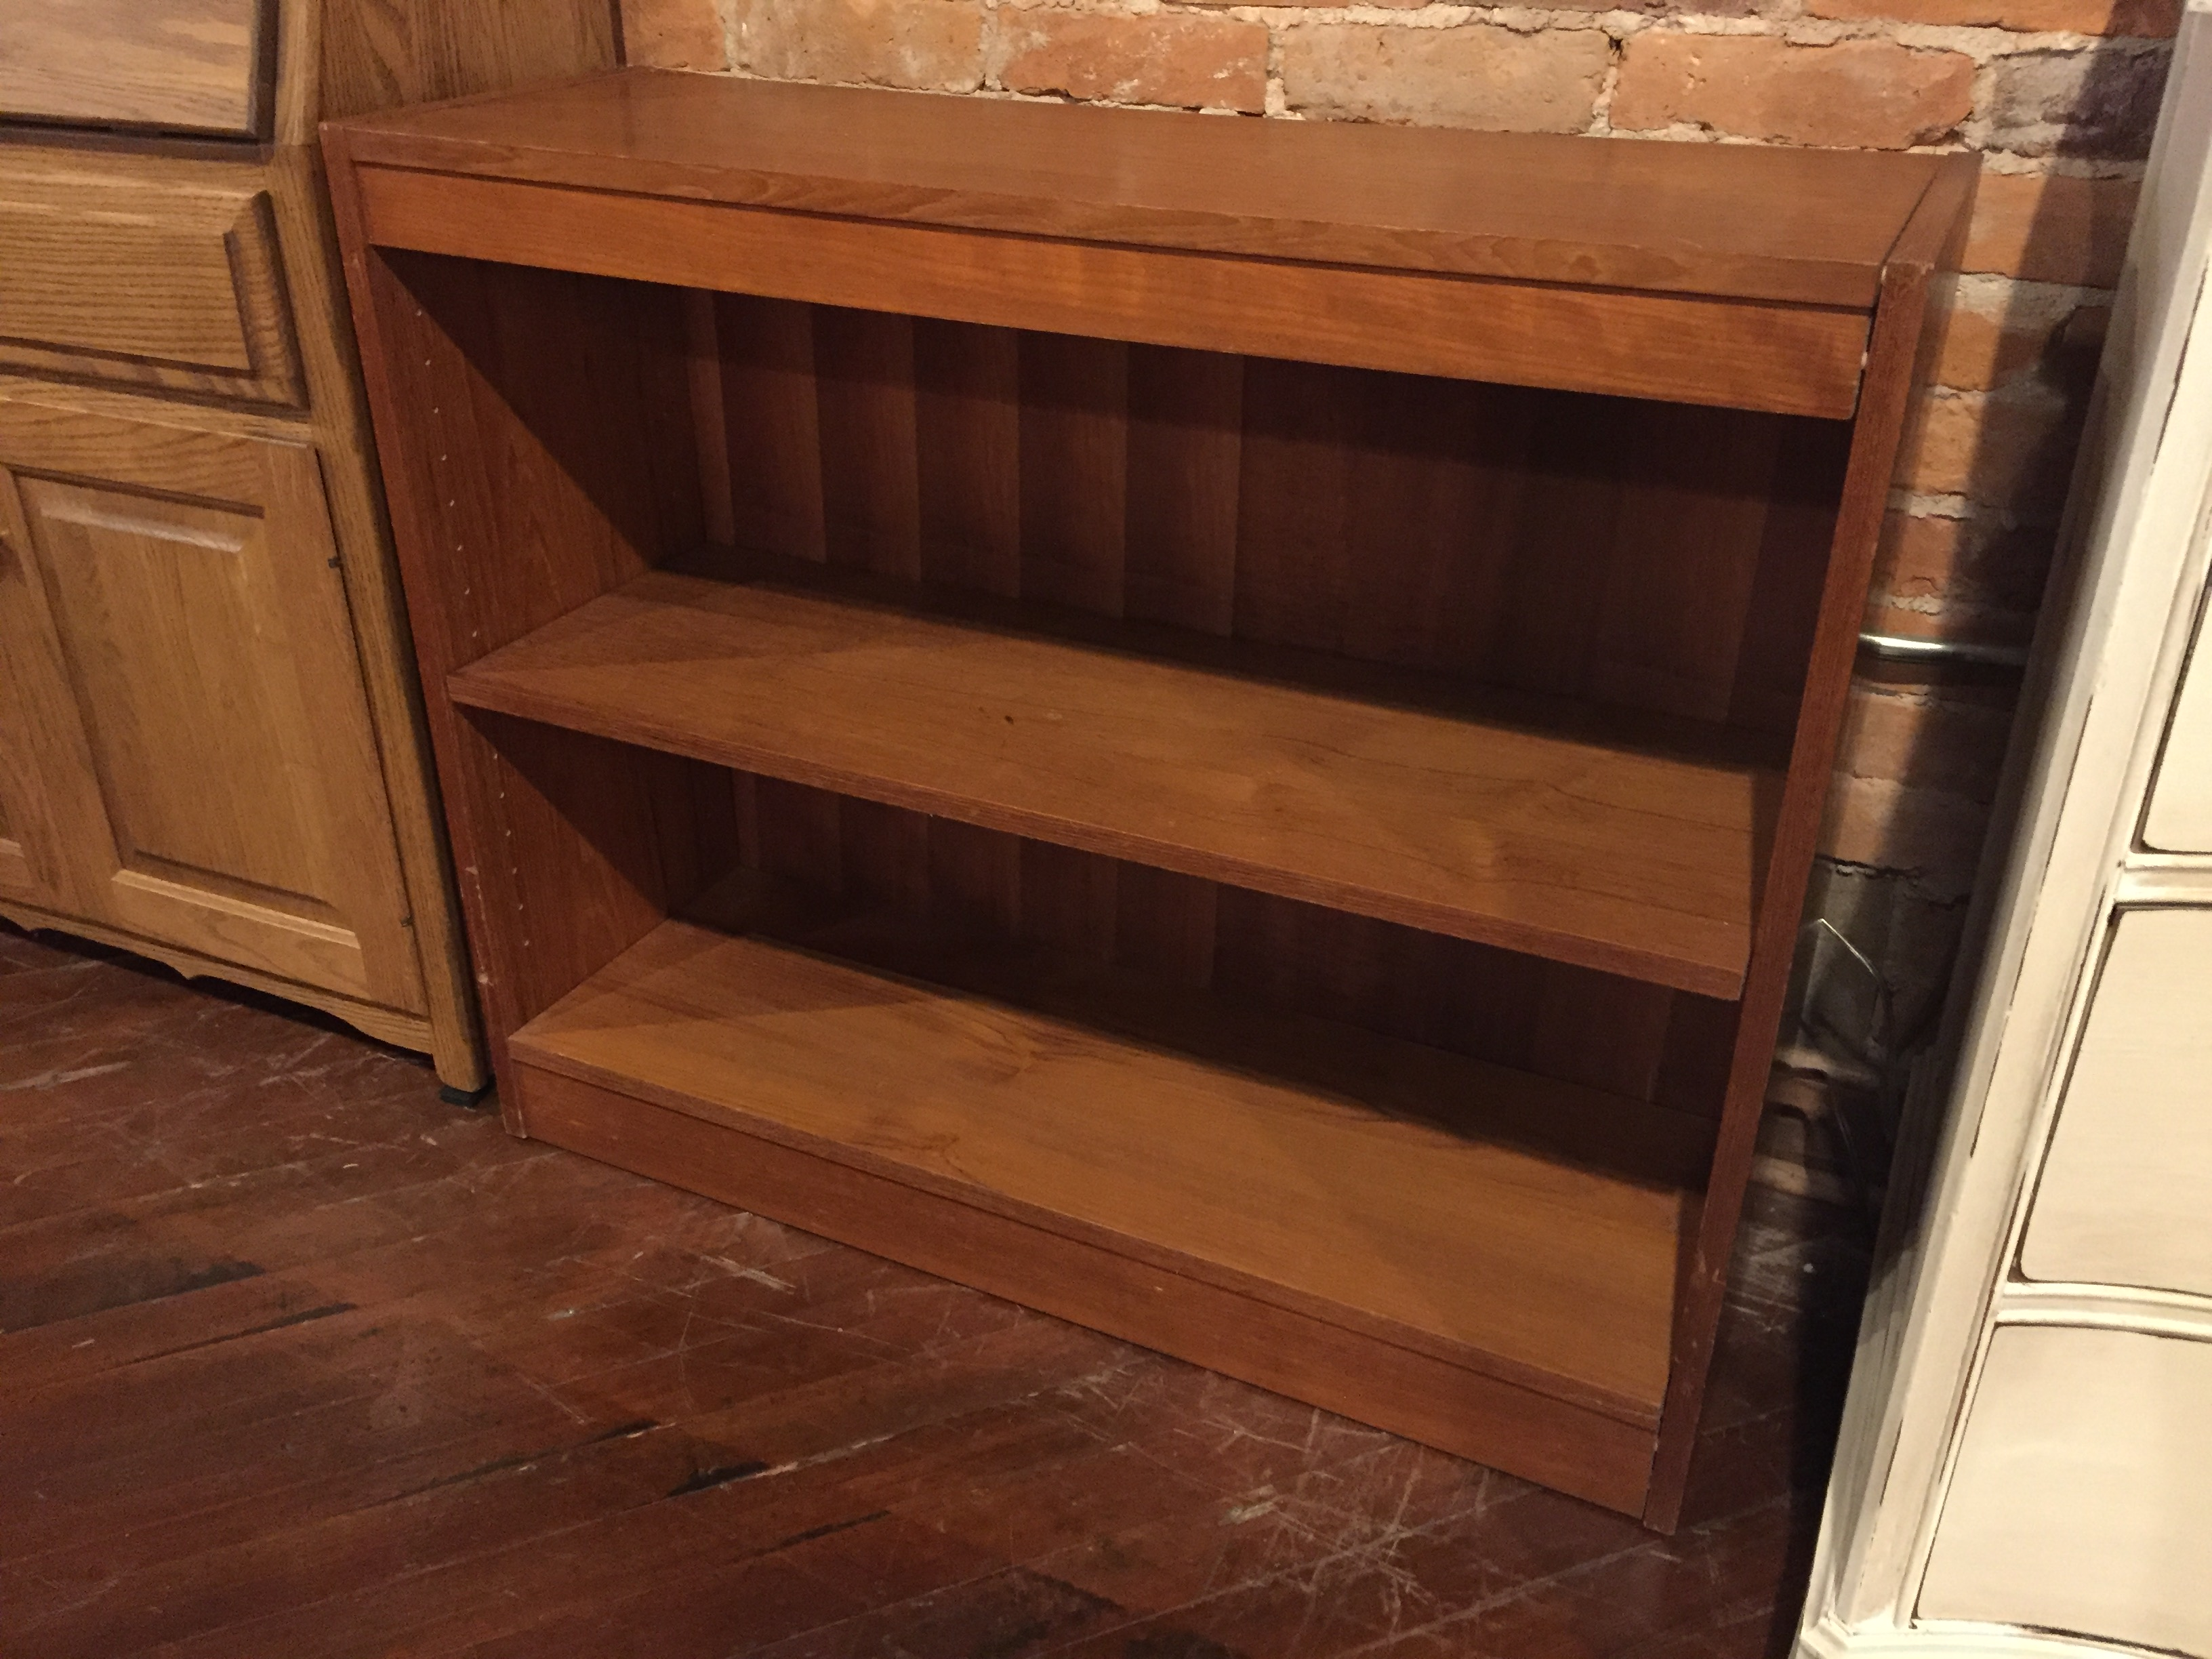 SMALL TEAK FINISH BOOKSHELF